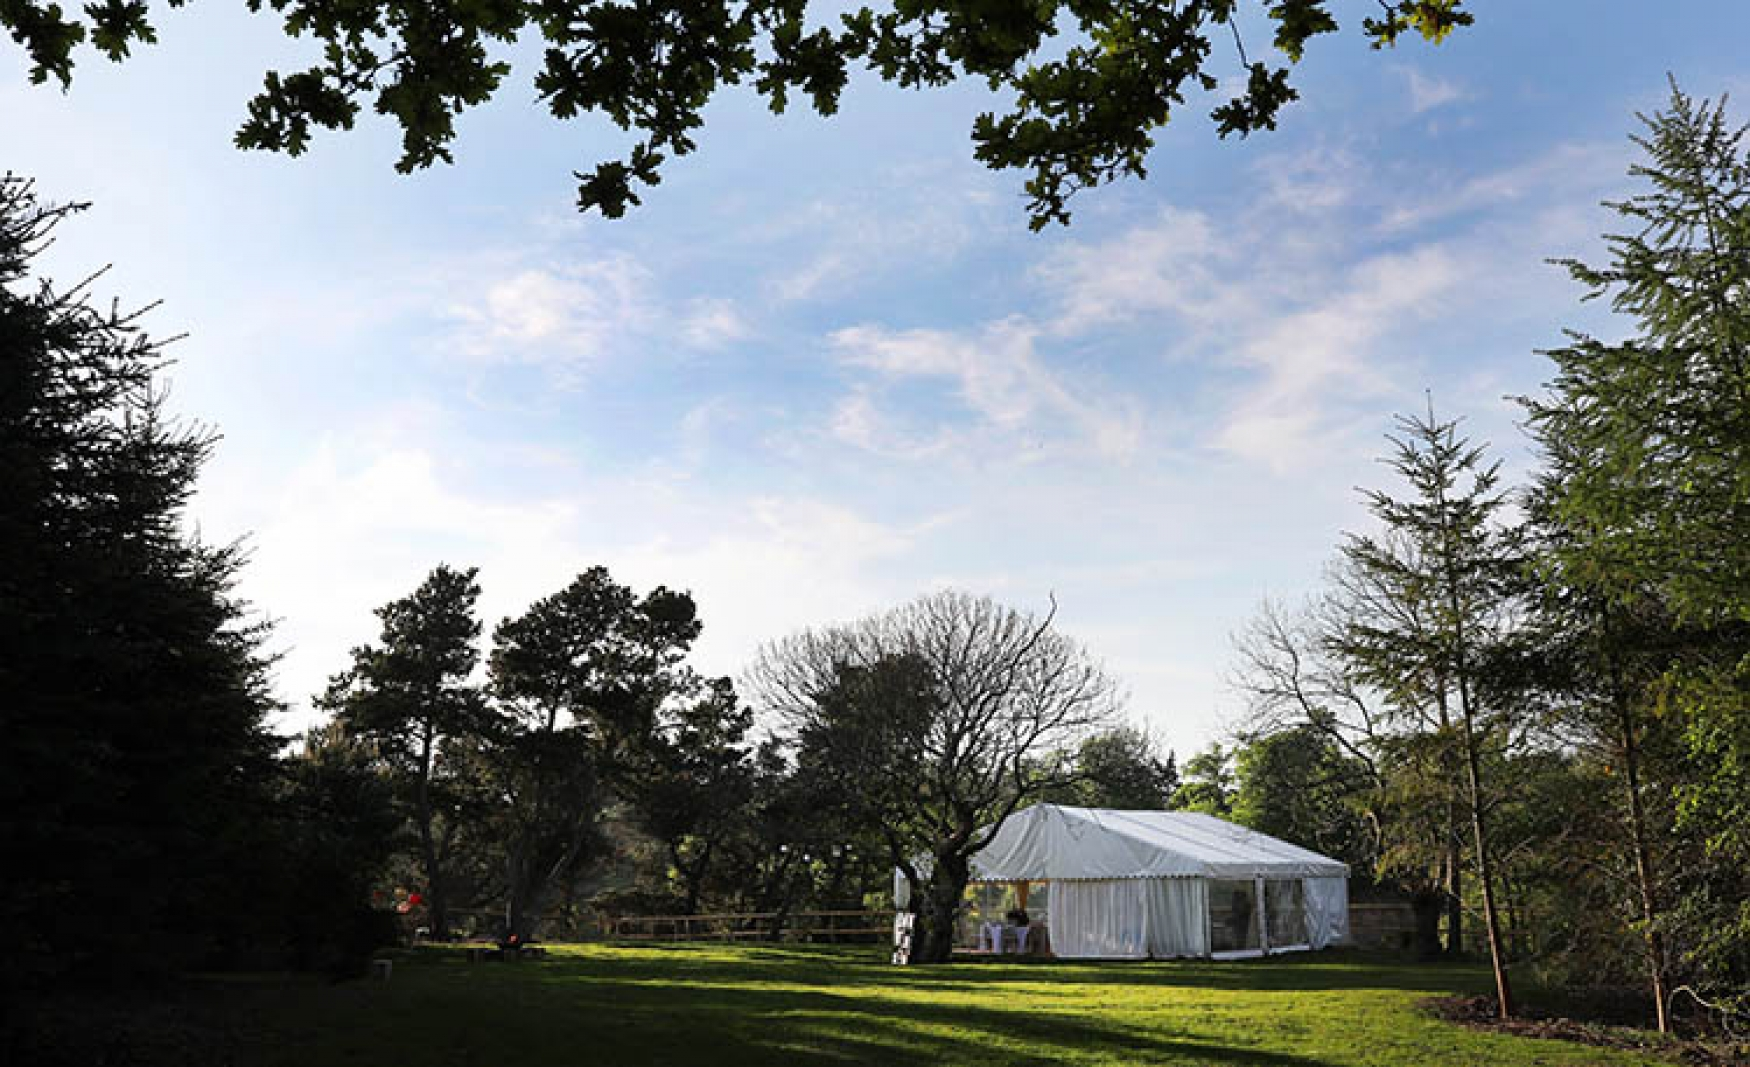 Buckland-Park-Lake-events-lawn